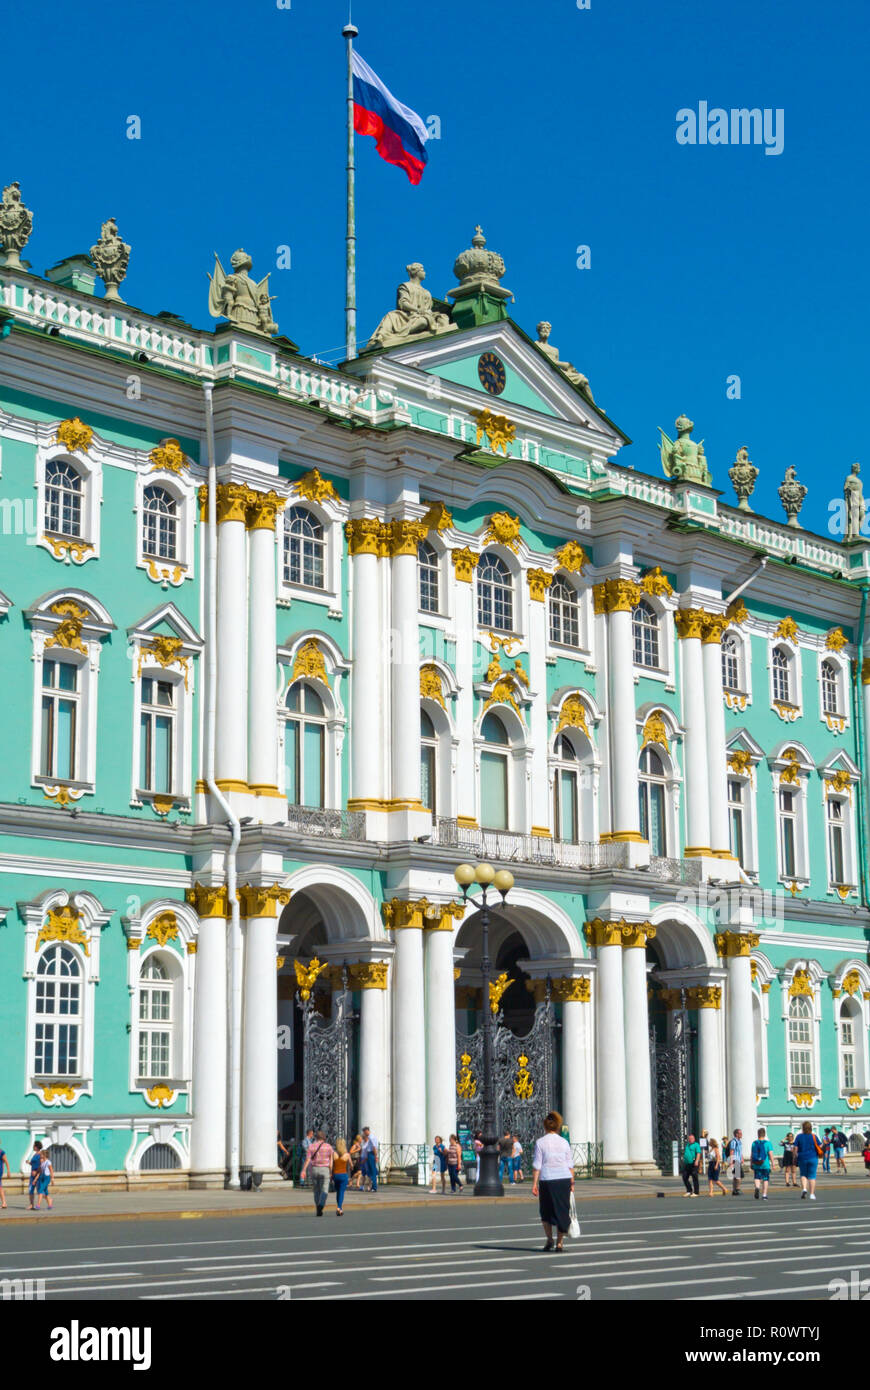 Winter Palace, Palace Square, Saint Petersburg, Russia - Stock Image